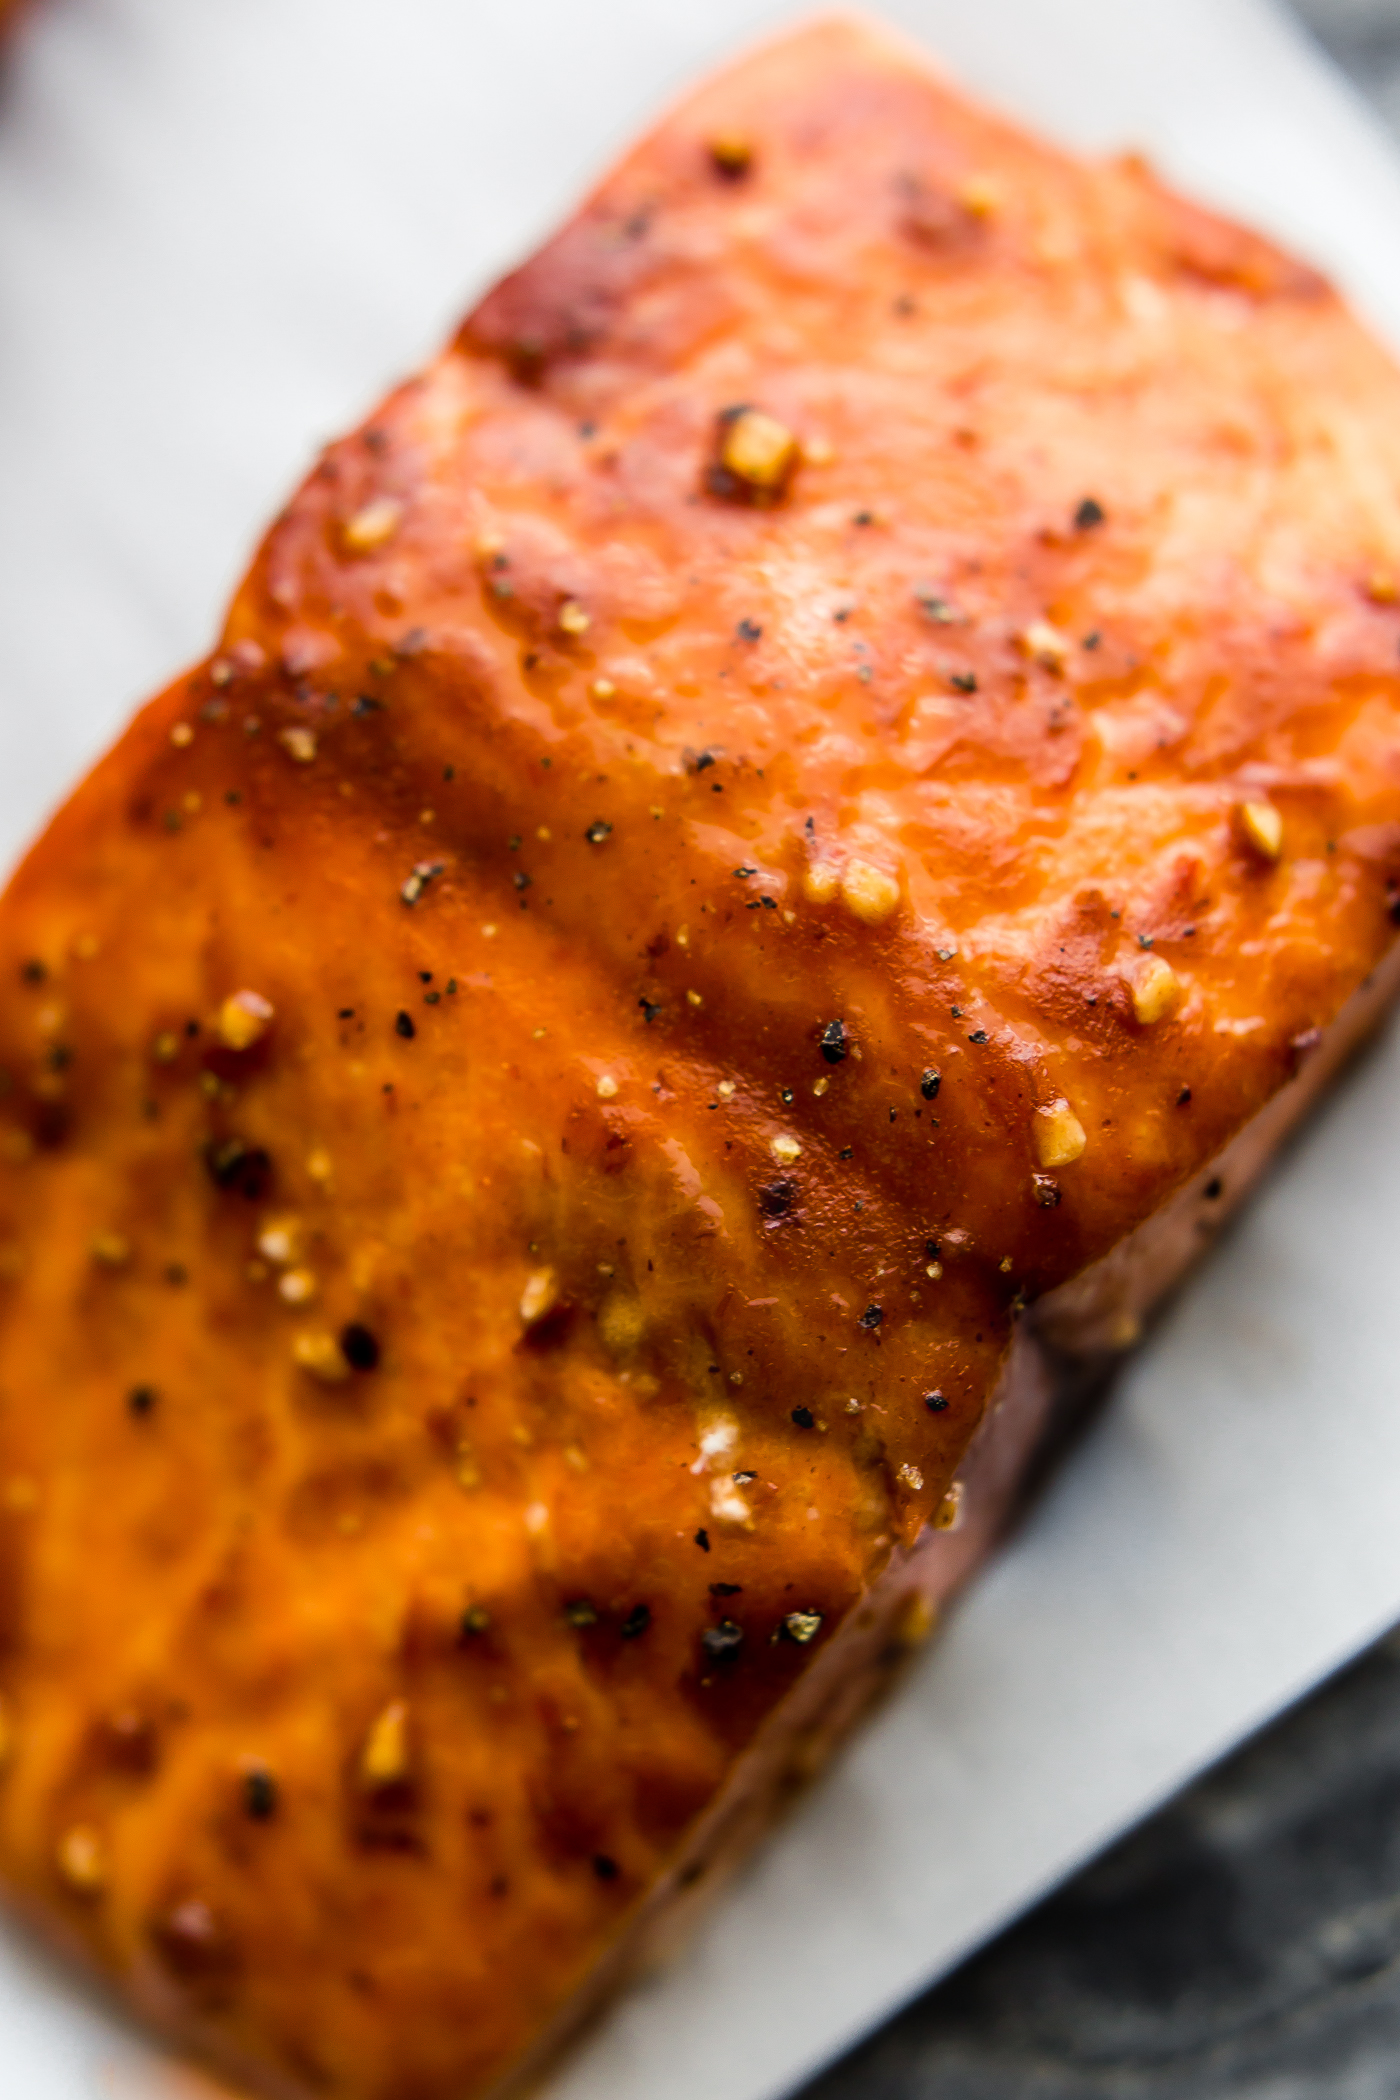 Honey BBQ Baked Salmon (Gluten free)